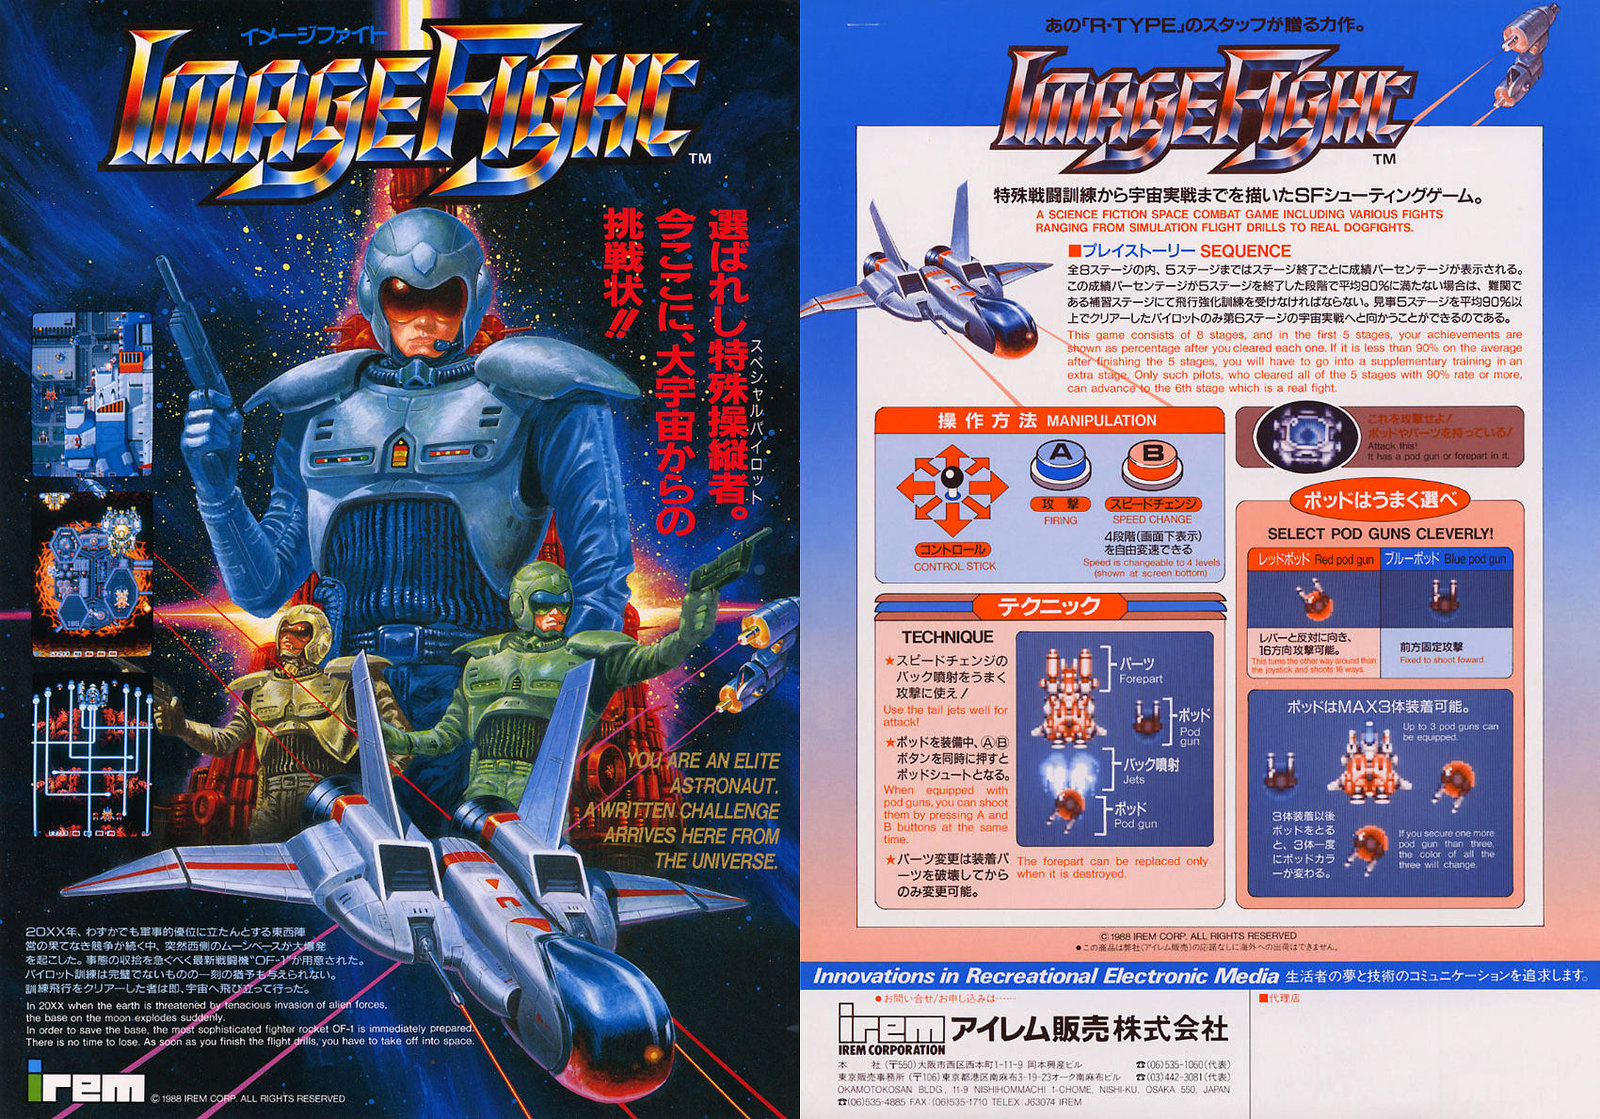 Image Fight Arcade Flyer